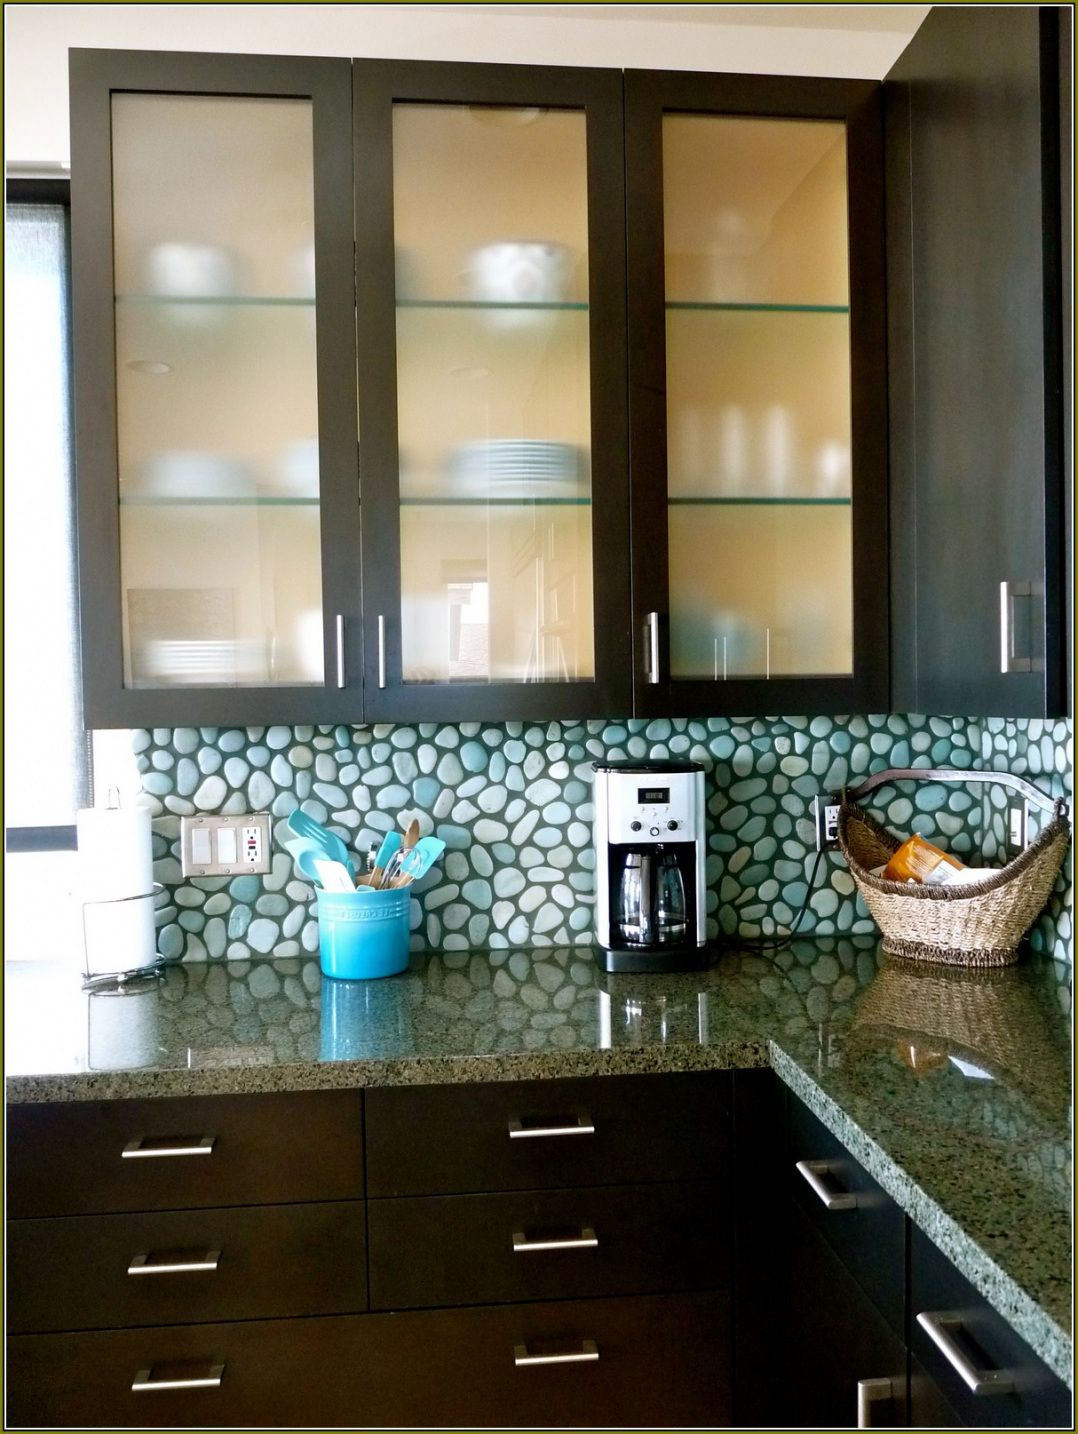 Lowe's Replacement Kitchen Cabinet Doors Fresh 2018 Lowes Kitchen Cabinets with Glass Ideas for Kitchen